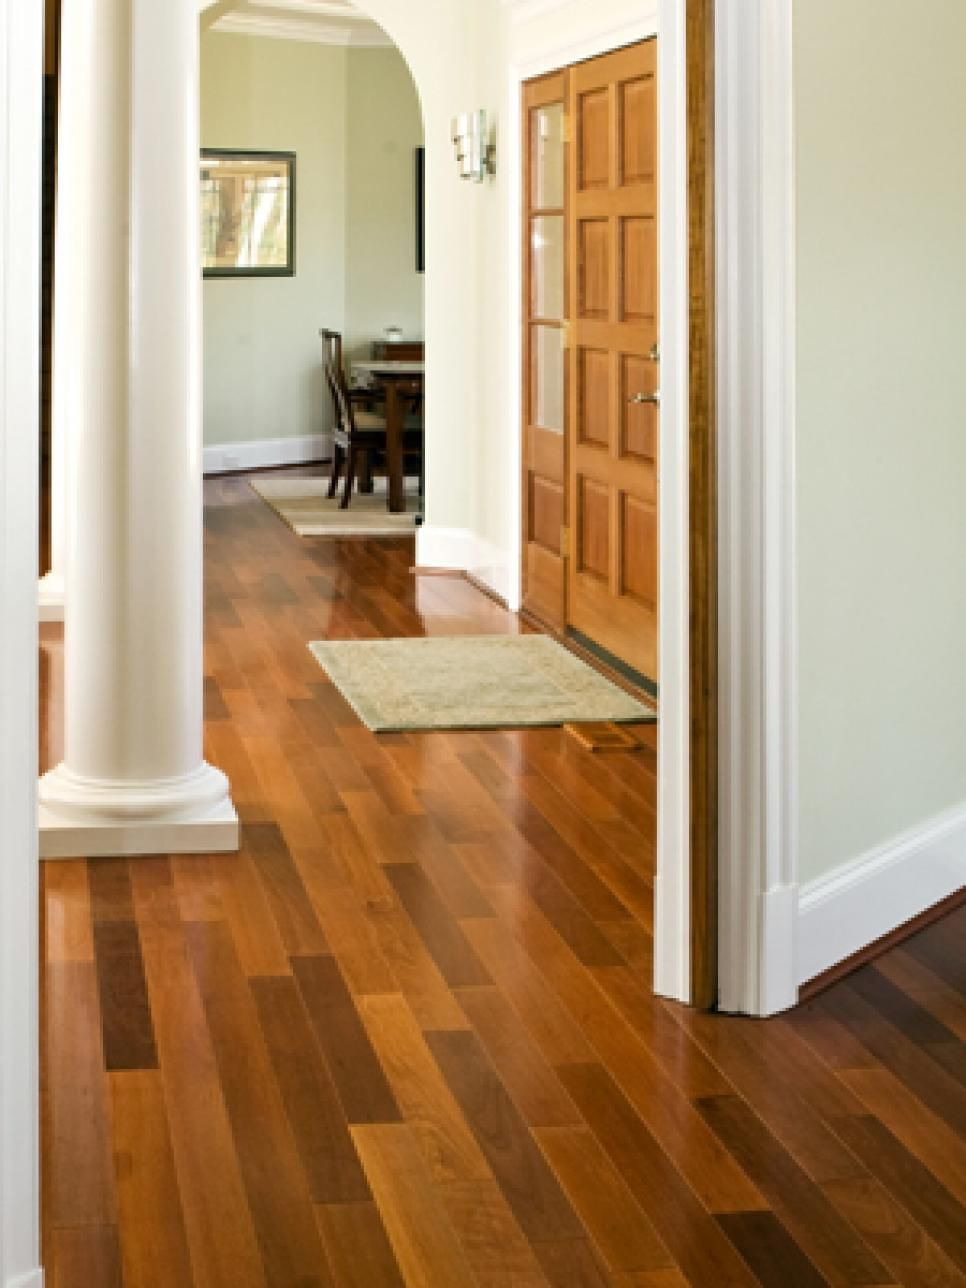 images of hardwood floor colors of 10 stunning hardwood flooring options interior design styles and for 10 stunning hardwood flooring options interior design styles and color schemes for home decorating